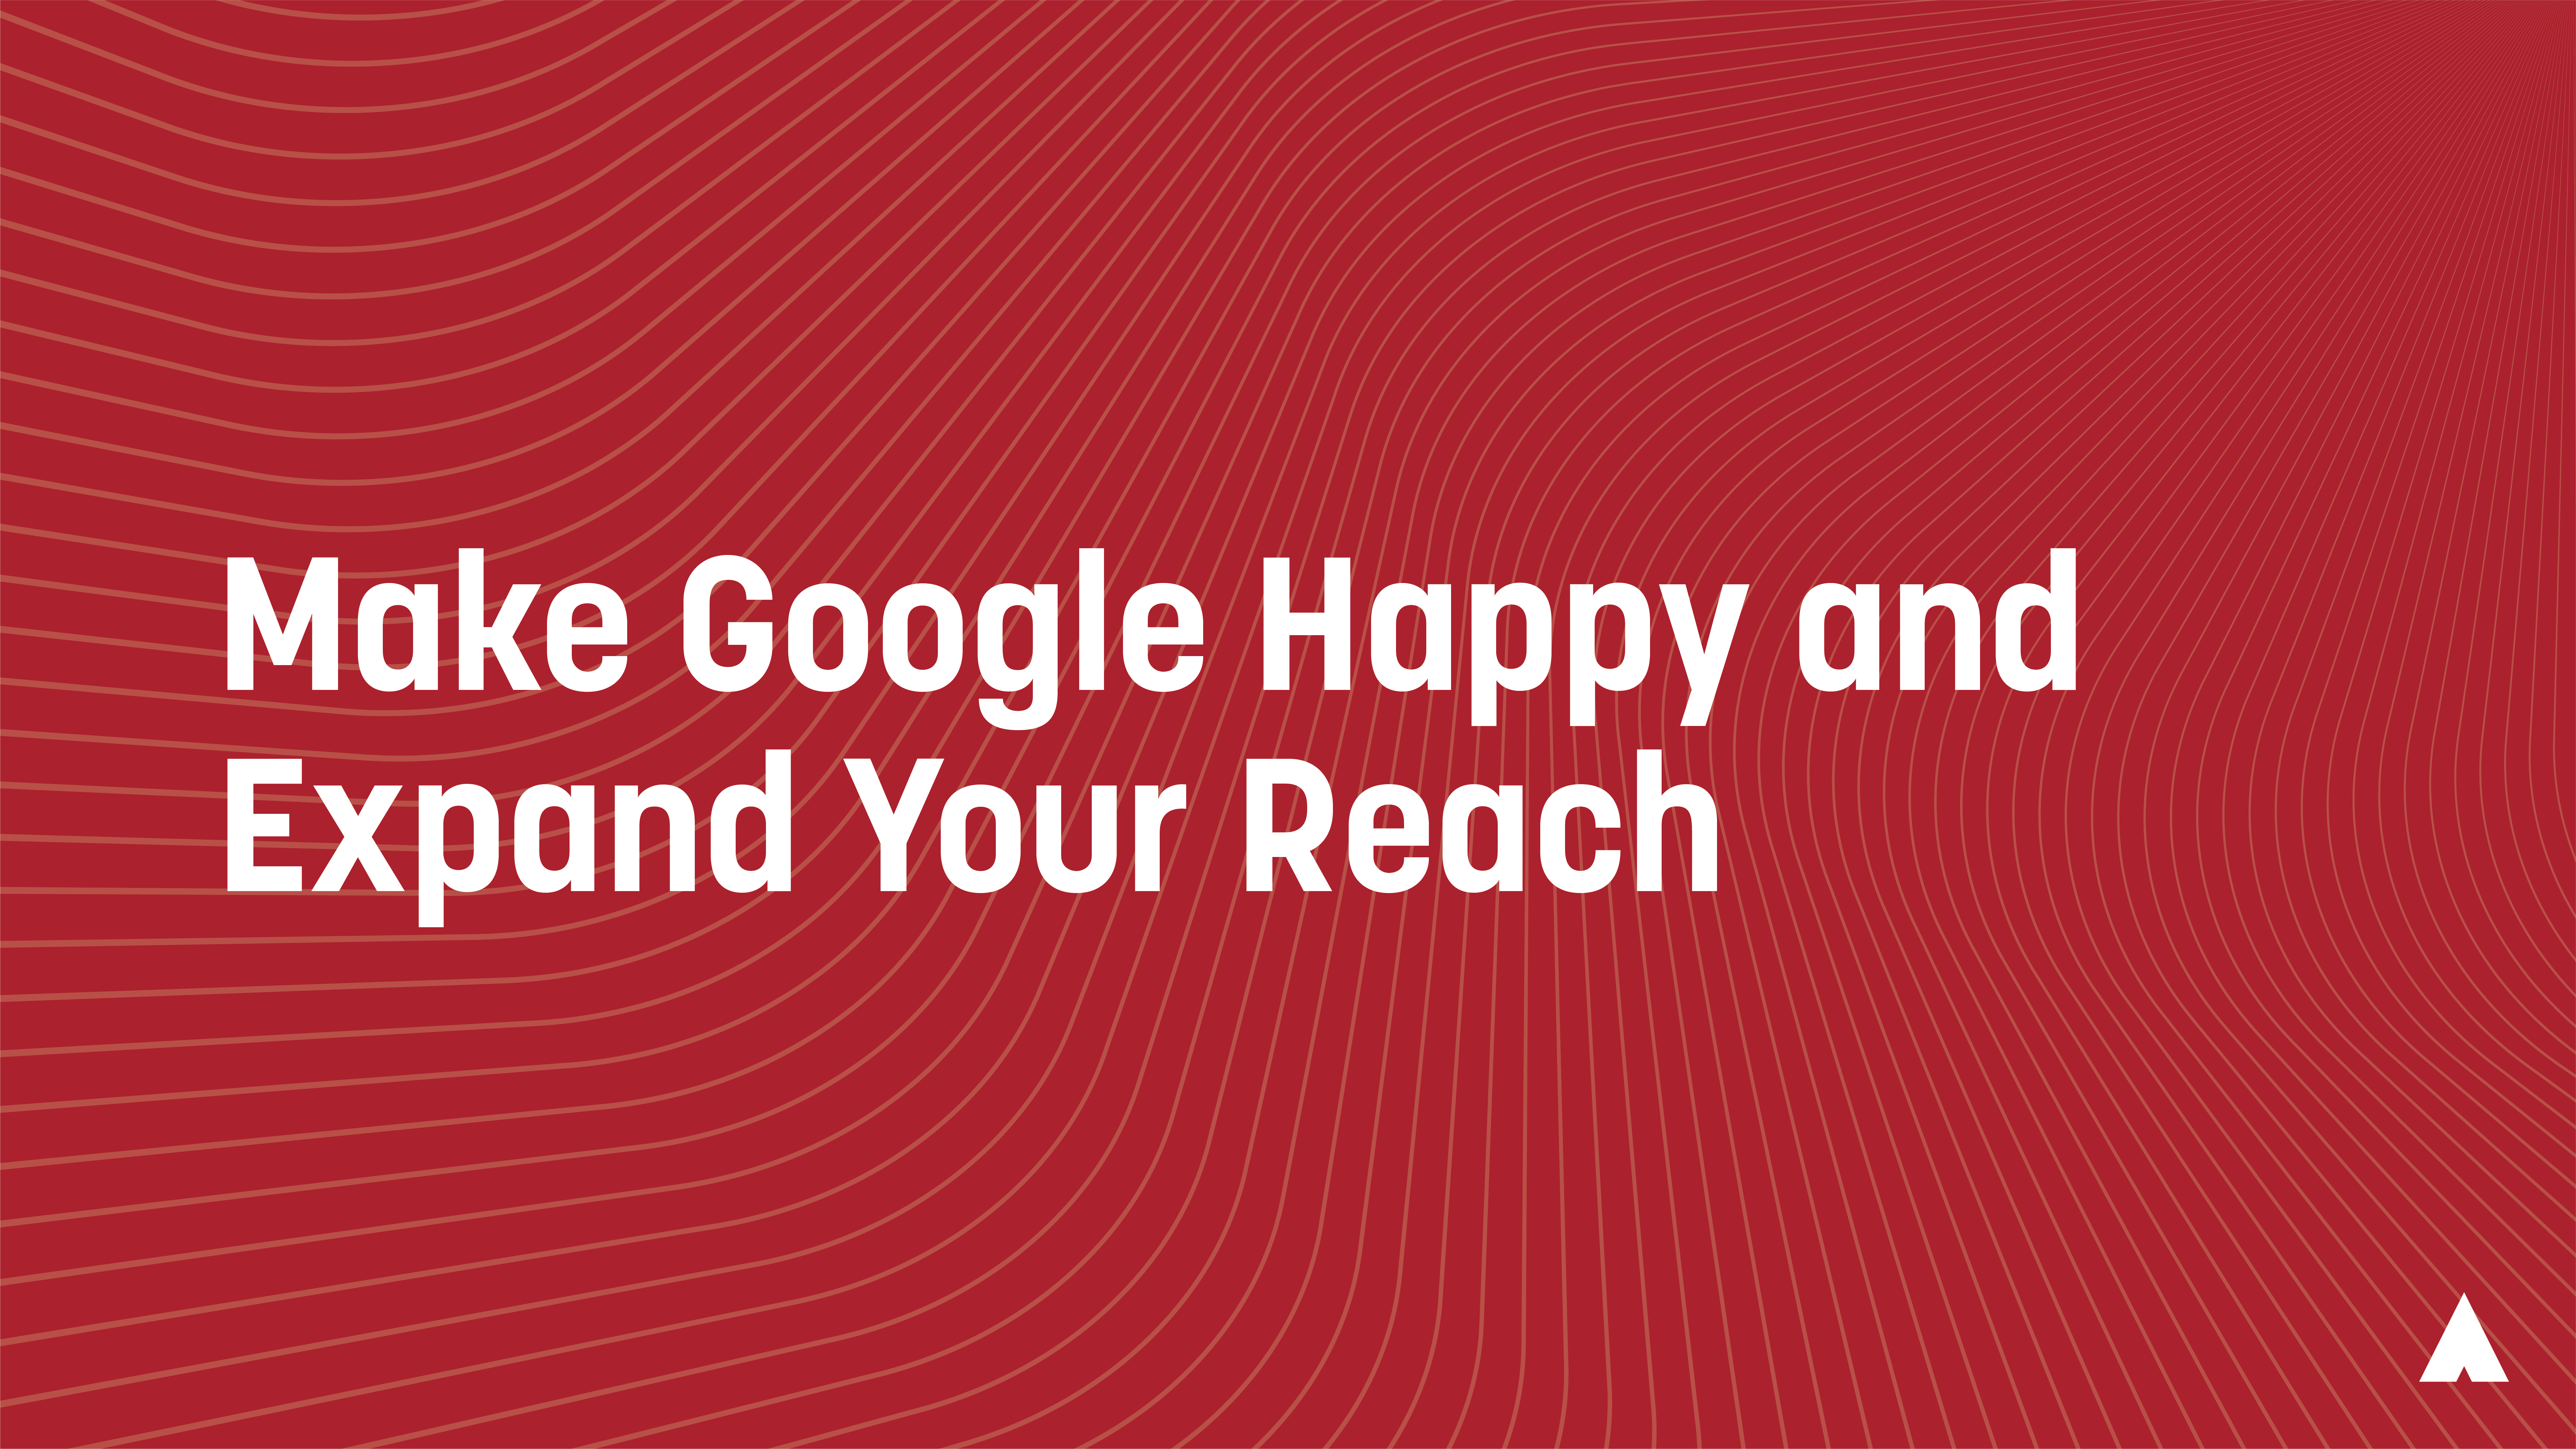 Make Google Happy and Expand Your Reach